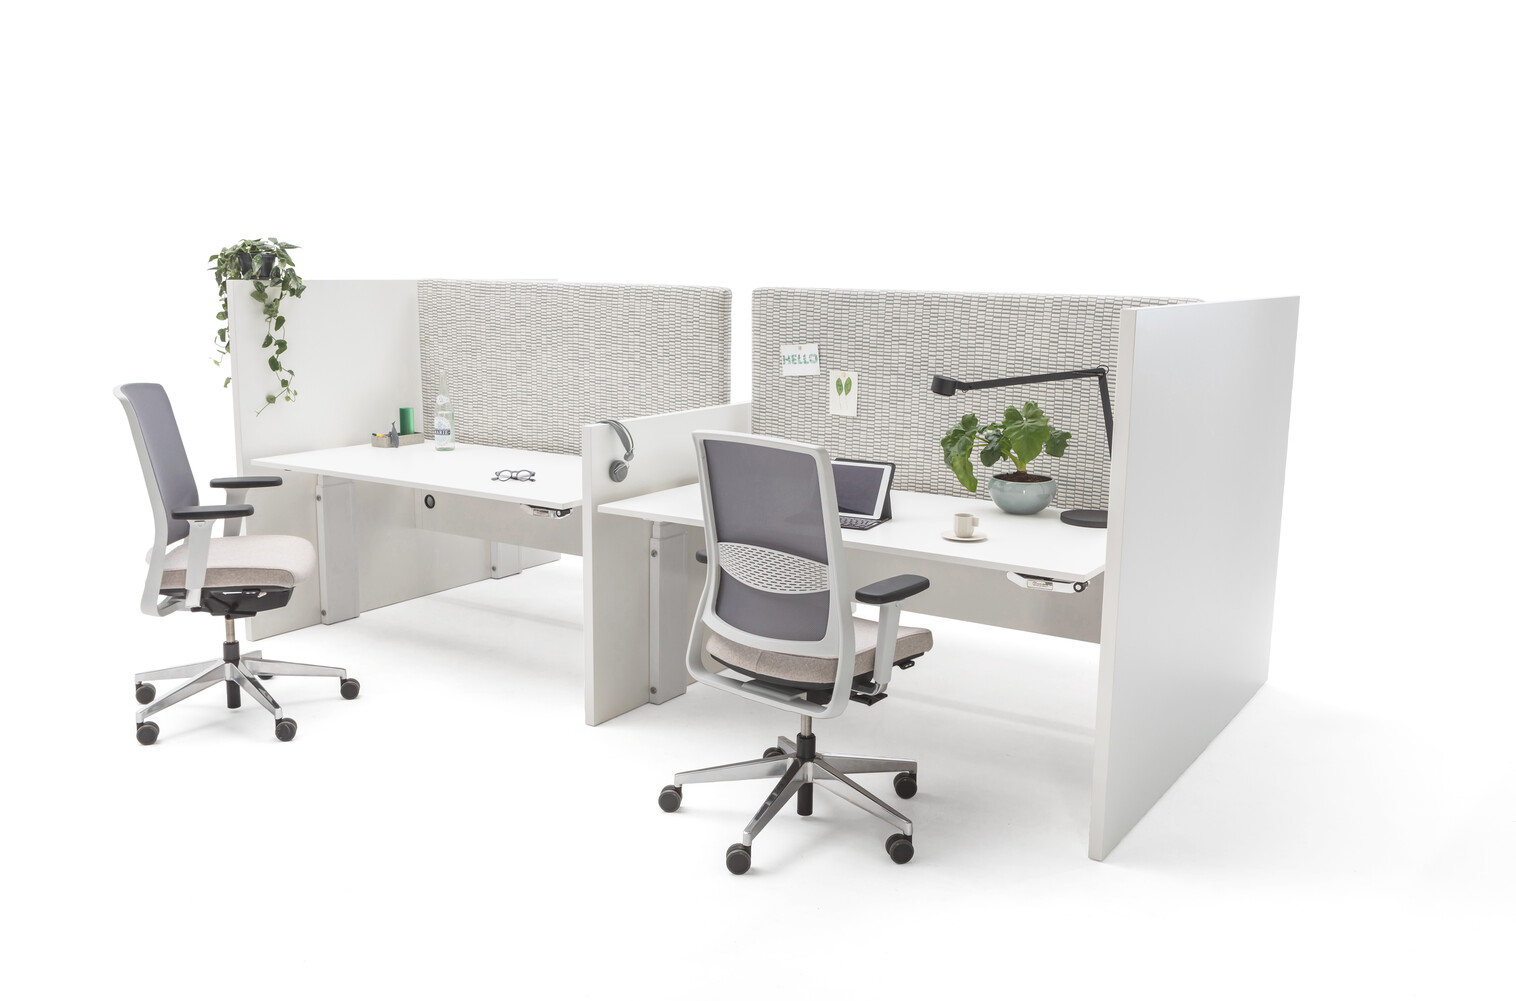 Gispen Cimo dual tables 4 pack with white frame with wooden panel walls with white chipboard tabletops and grey upholstered screens straight thick with 2 grey Zinn office chairs front right view